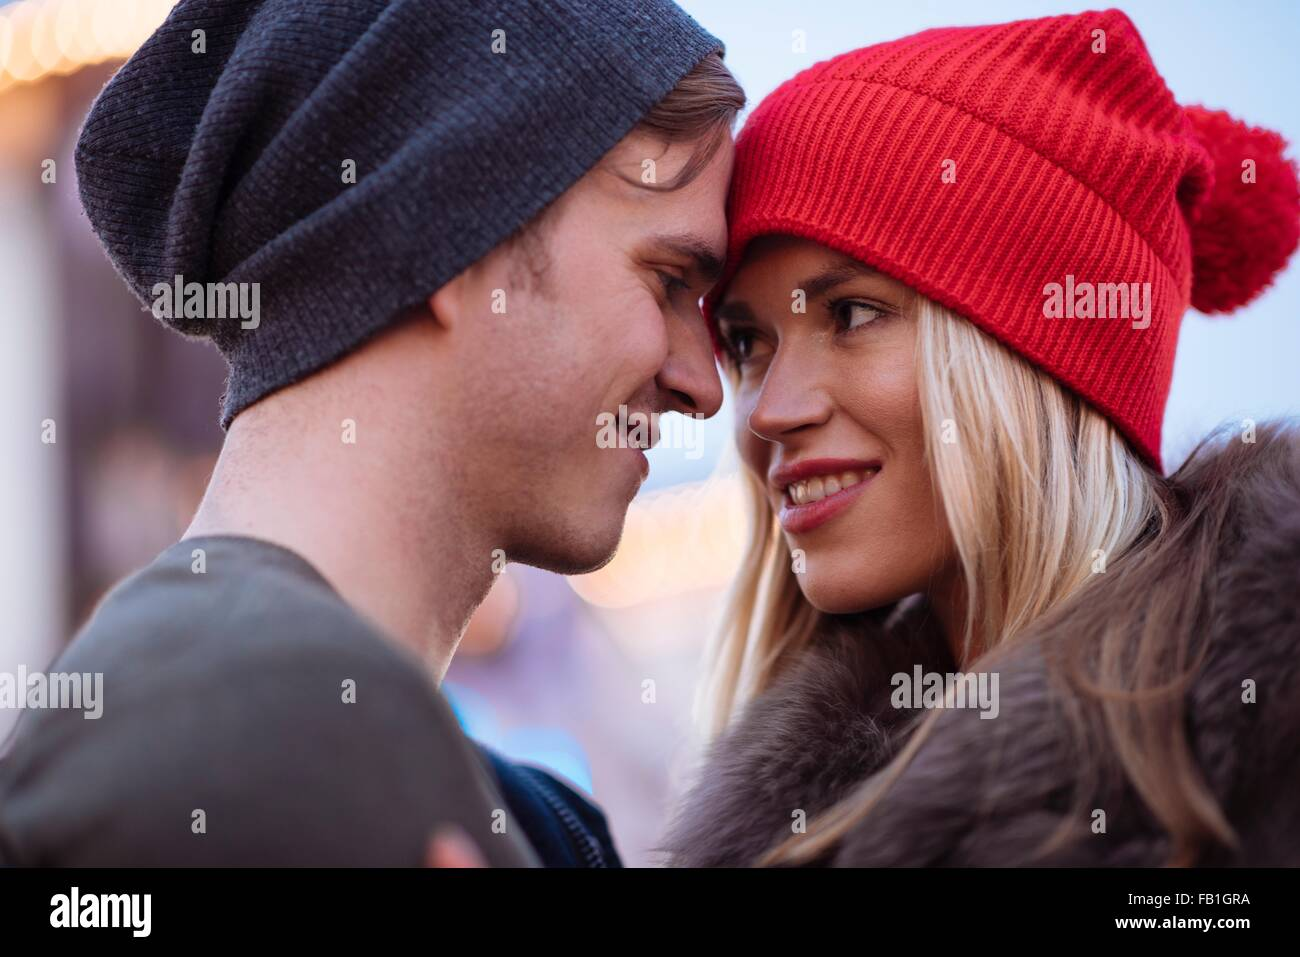 Head and shoulder shot of romantic young couple wearing knit hats - Stock Image